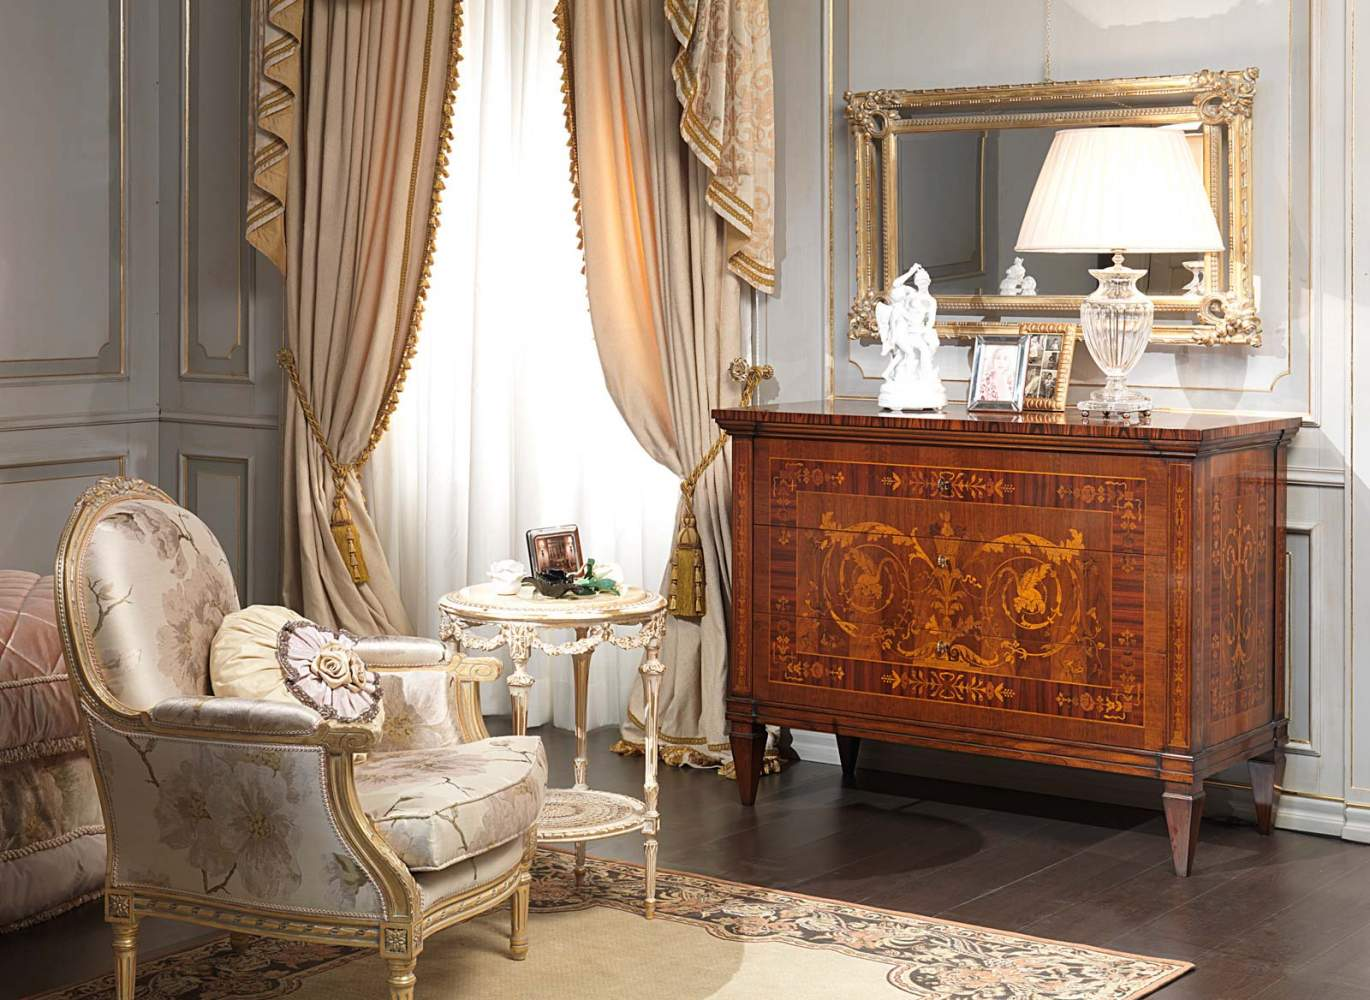 Classic Maggiolini bedroom, chest of drawers, wall mirror, armchair